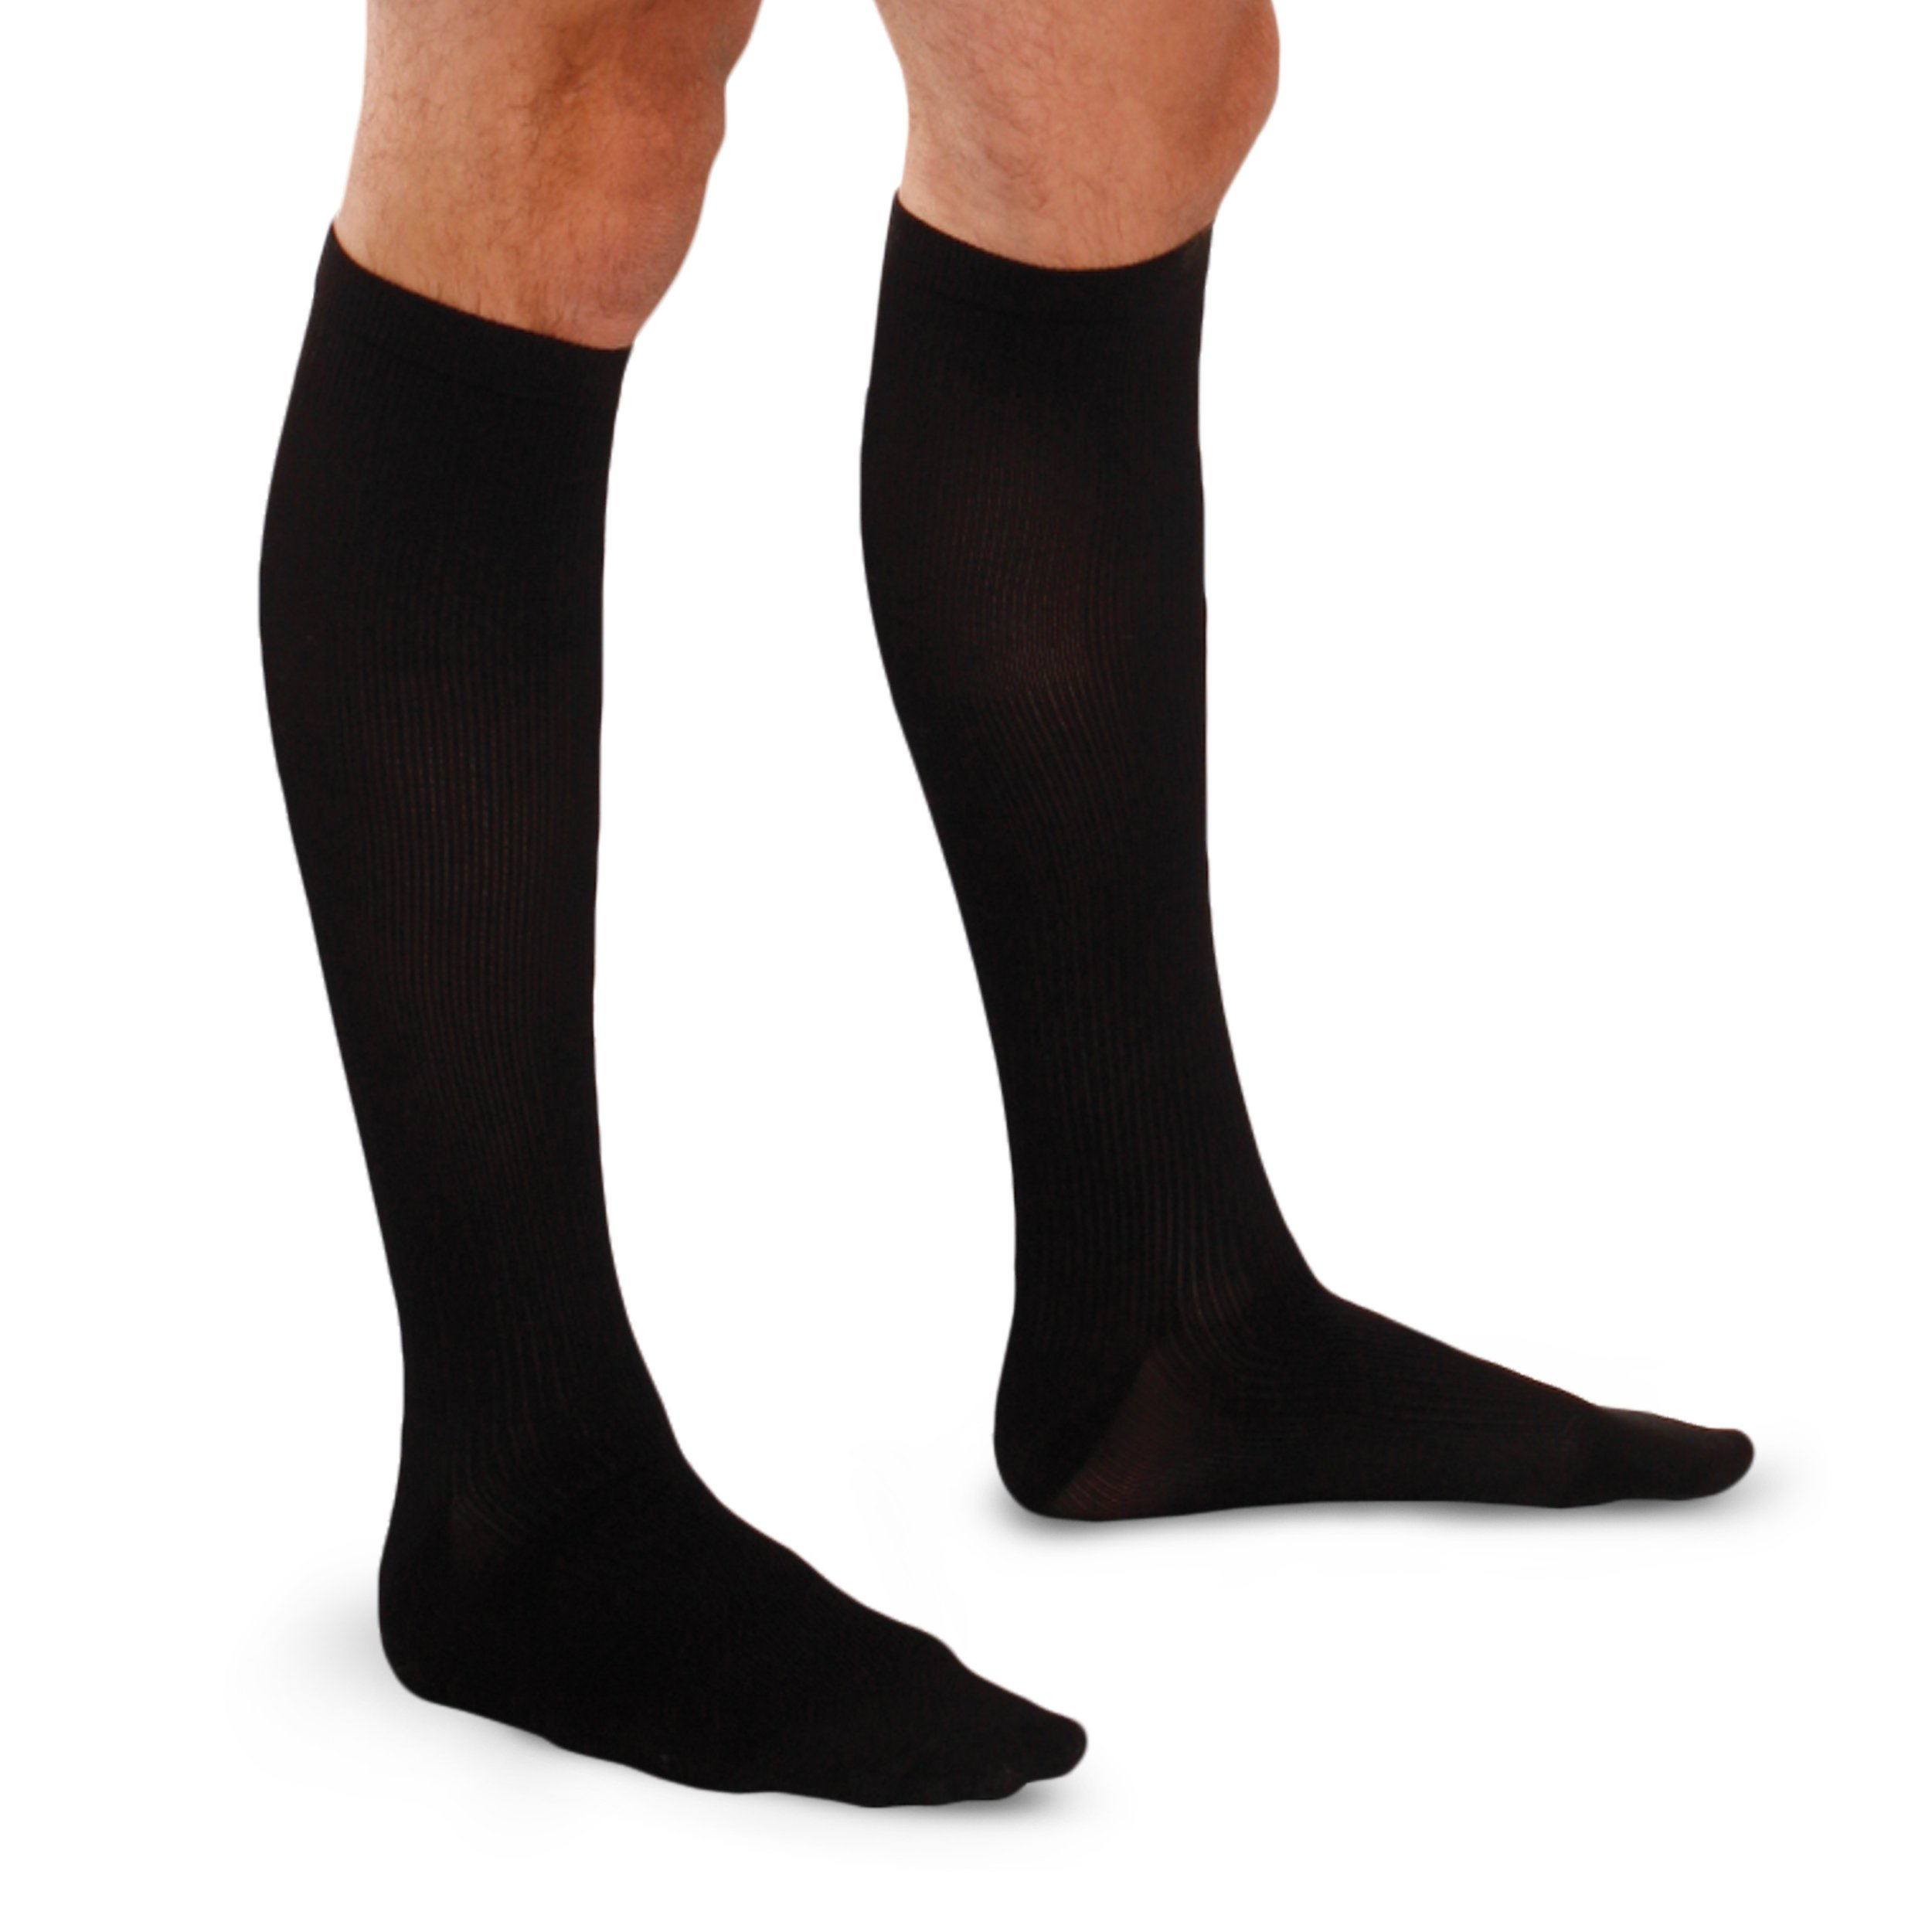 Therafirm Men's Trouser Socks - 20-30mmHg Moderate Compression Dress Socks (Black, Medium) by Therafirm